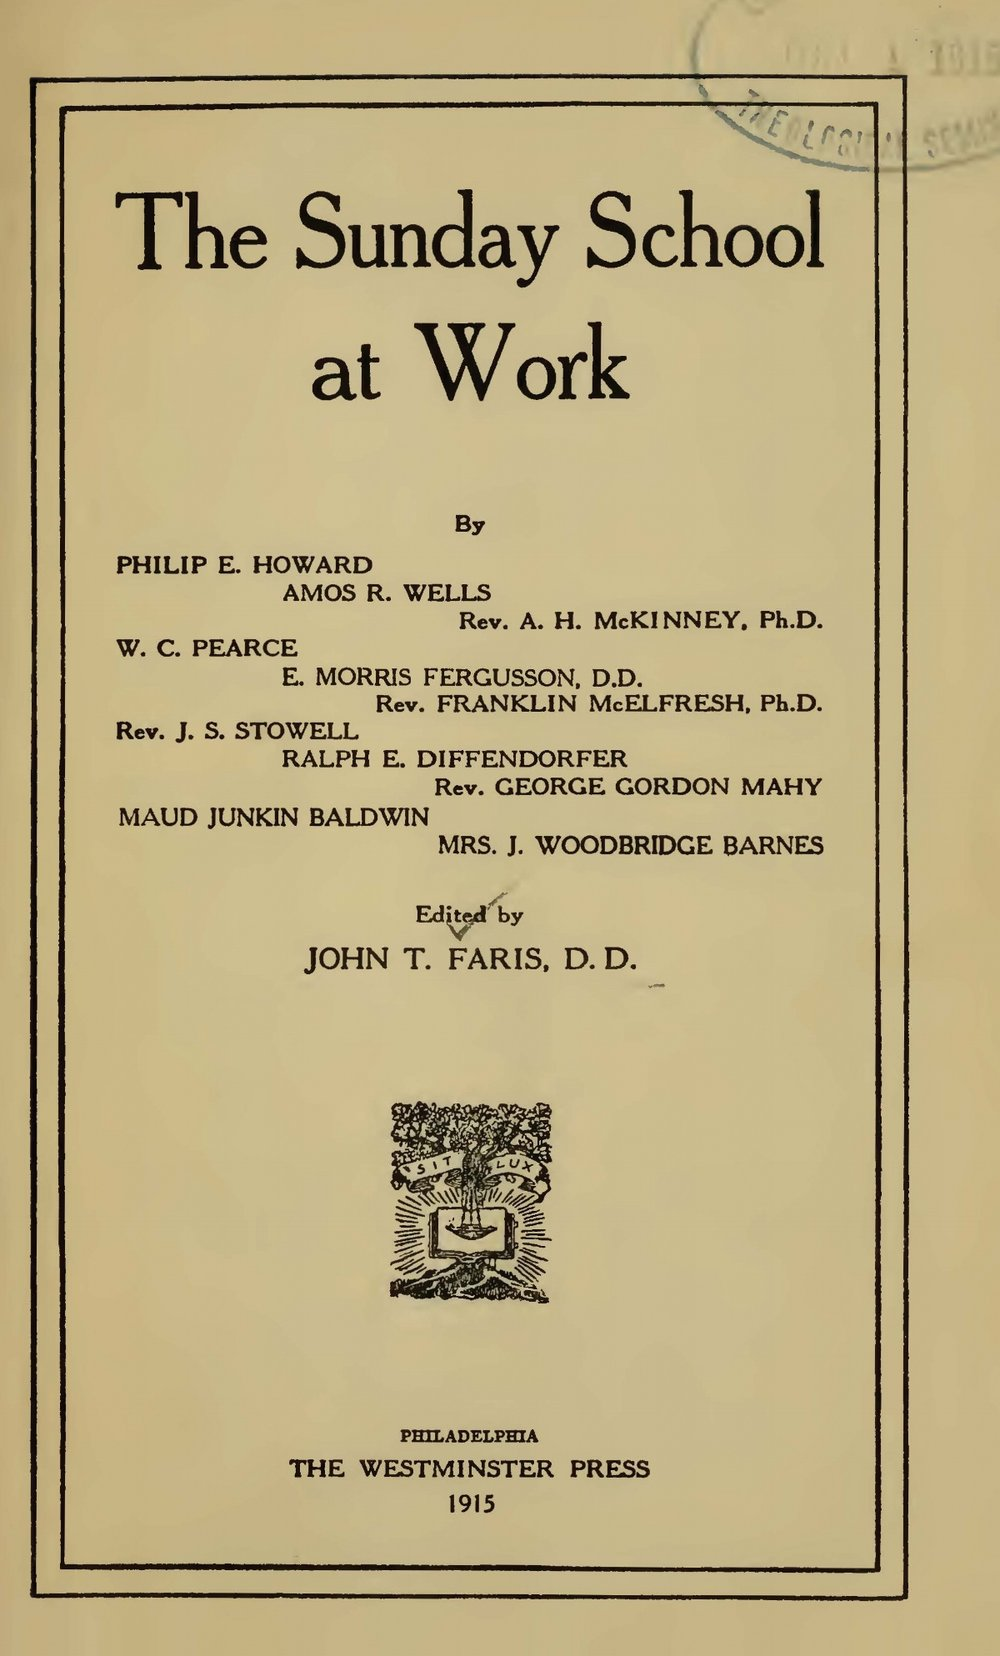 Faris, John Thomson, The Sunday School at Work Title Page.jpg